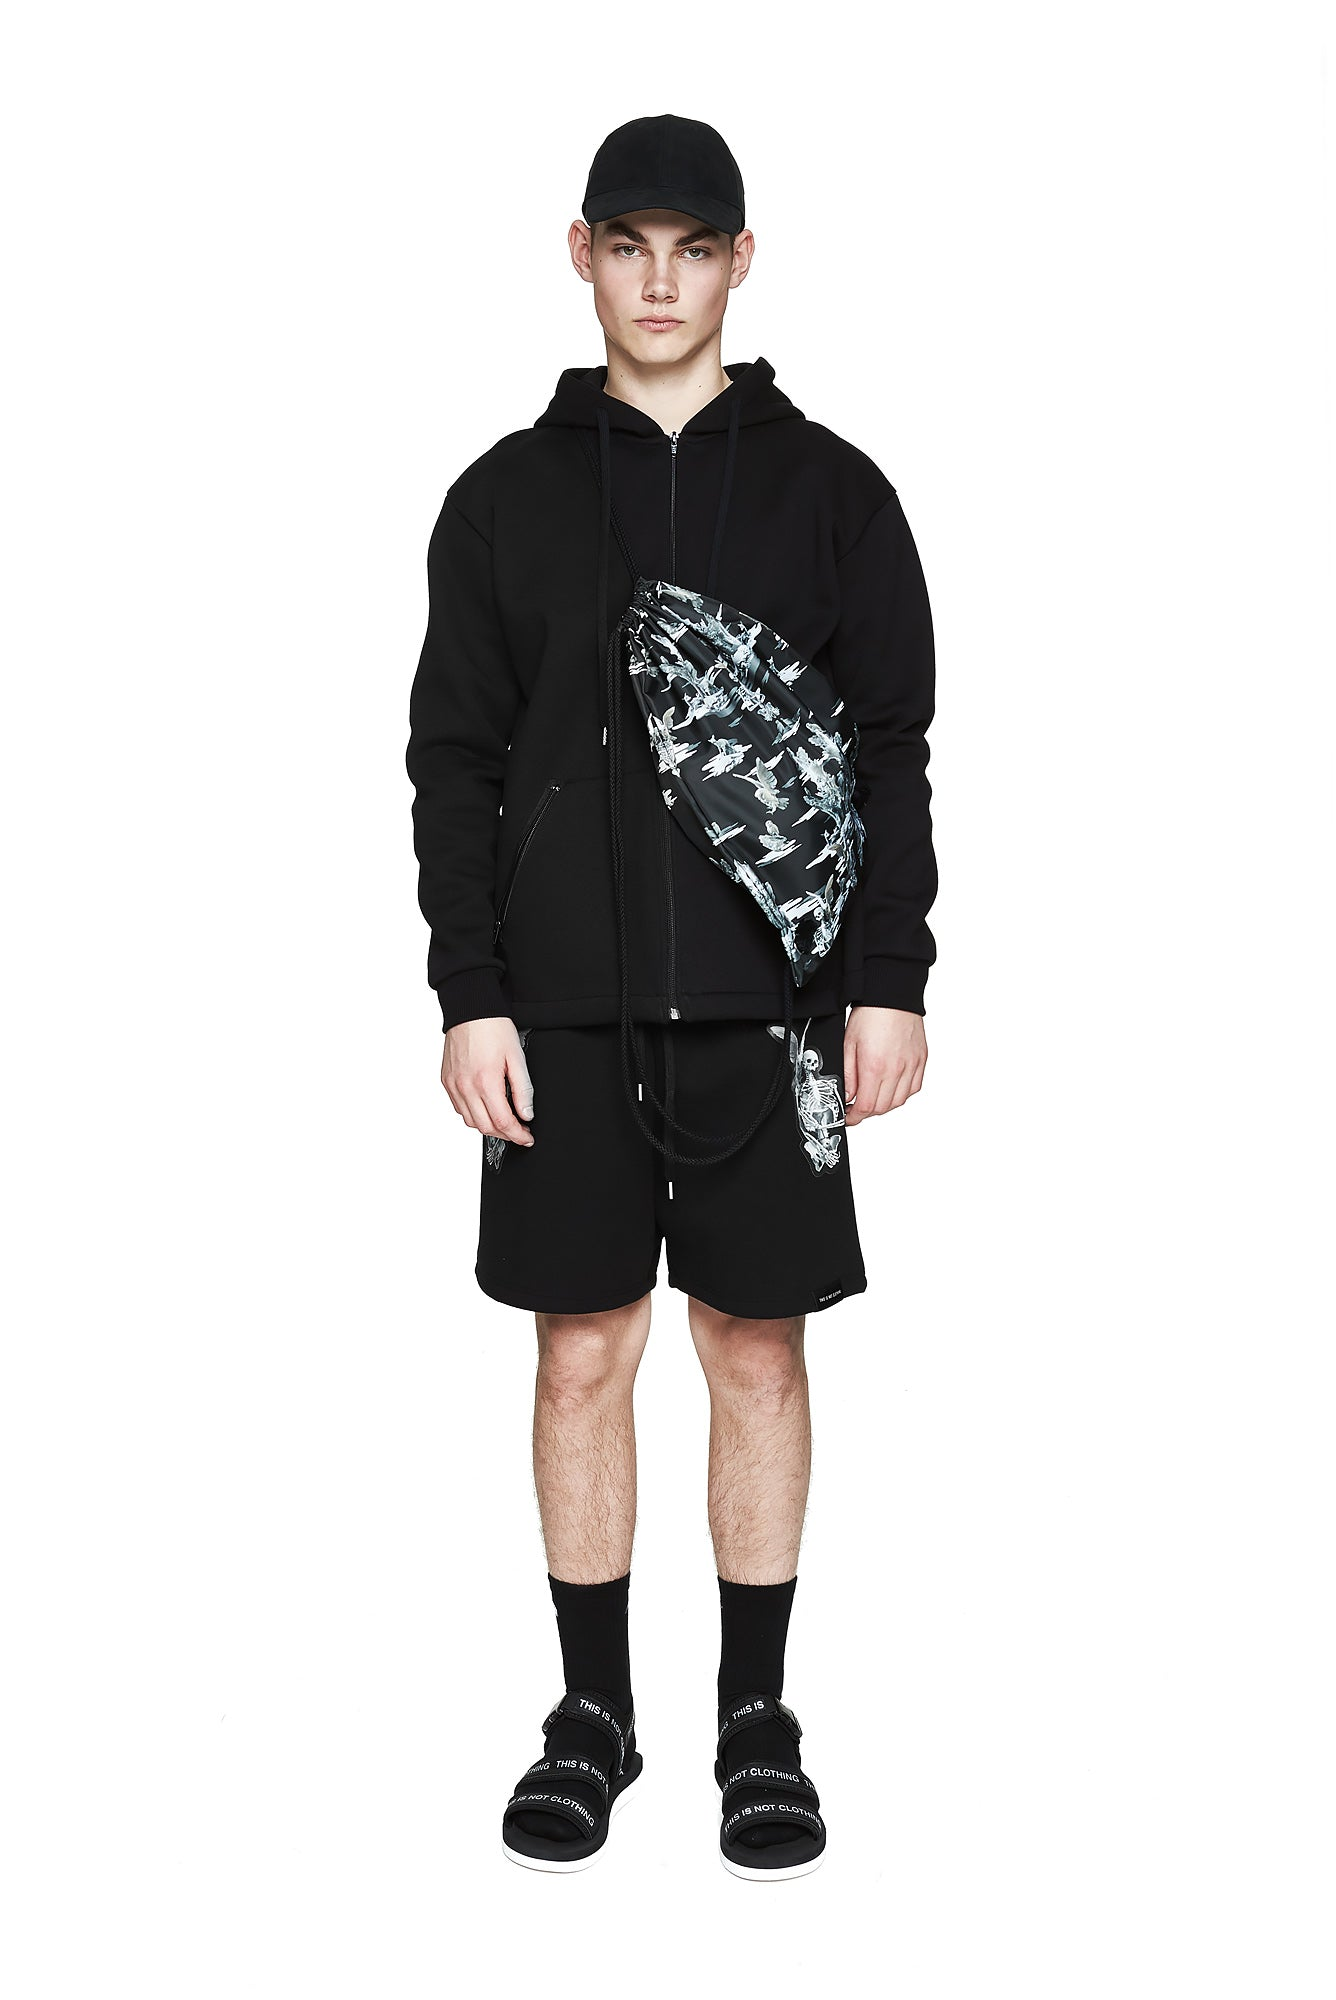 Fall of Paradise Hoodie - Designer Brand - This Is Not Clothing - Lookbook Photo 1